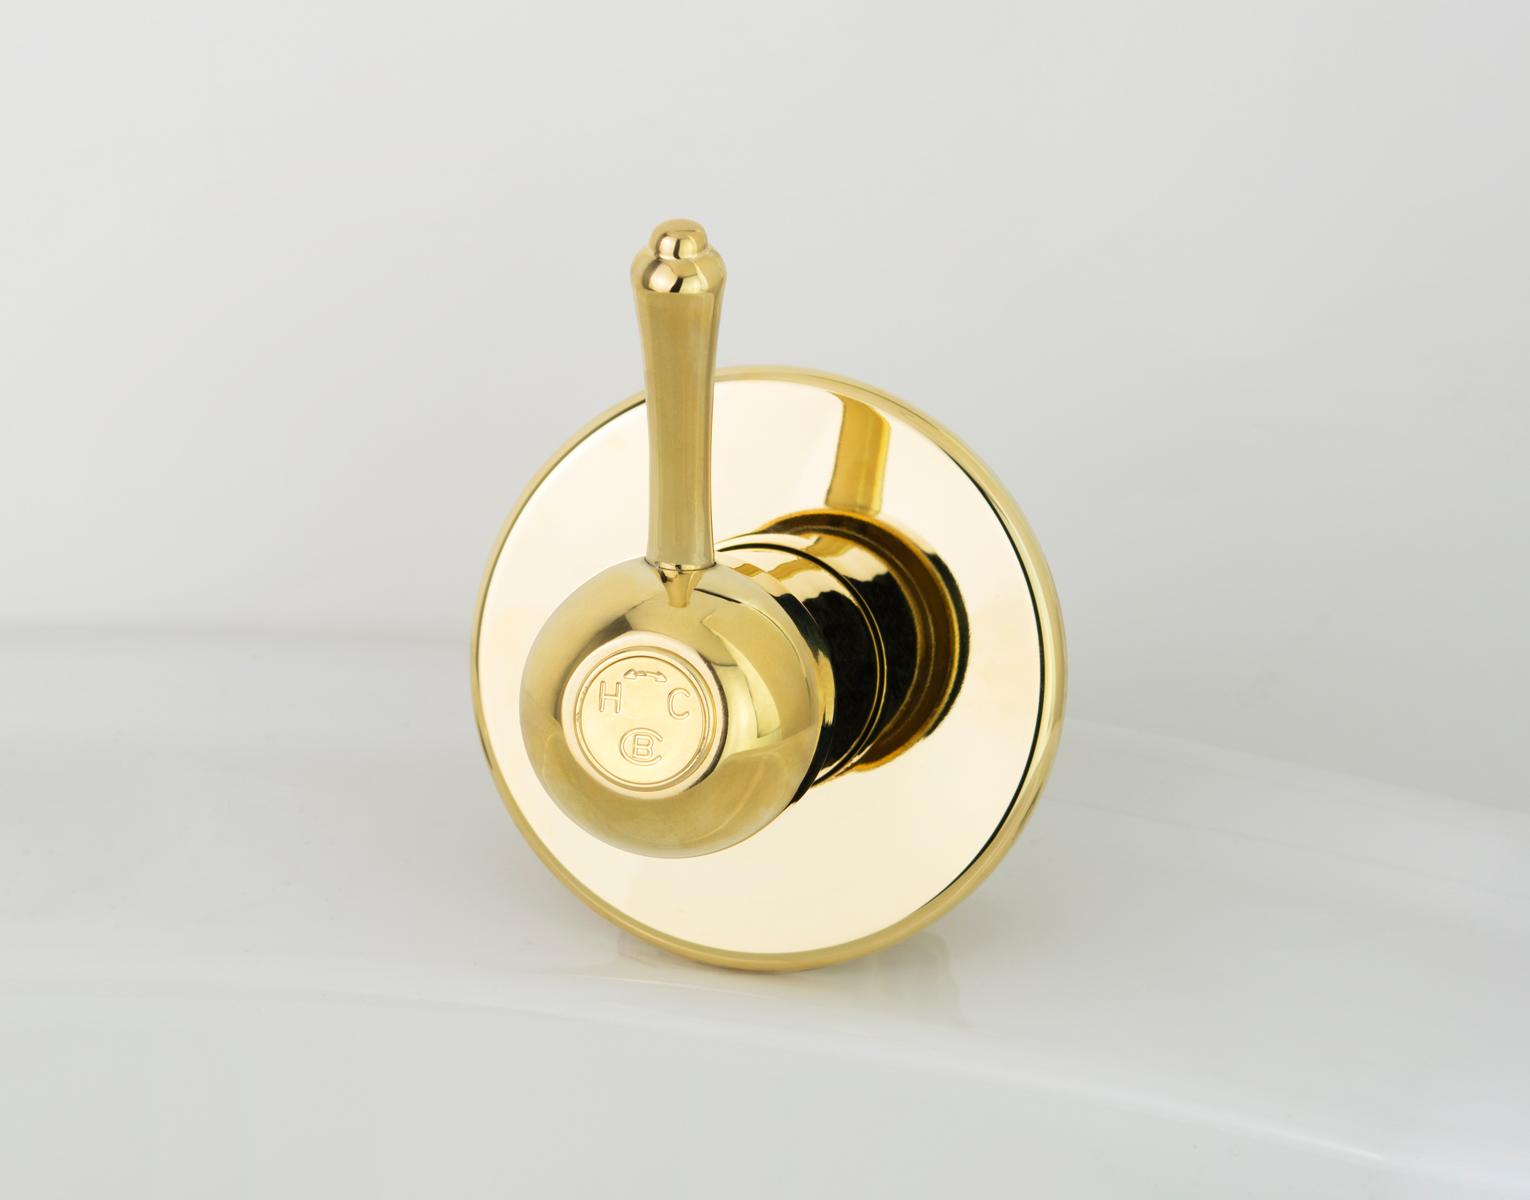 Roulette Lever Wall Mixer in Antique Brass with Engraved Button Upgrade